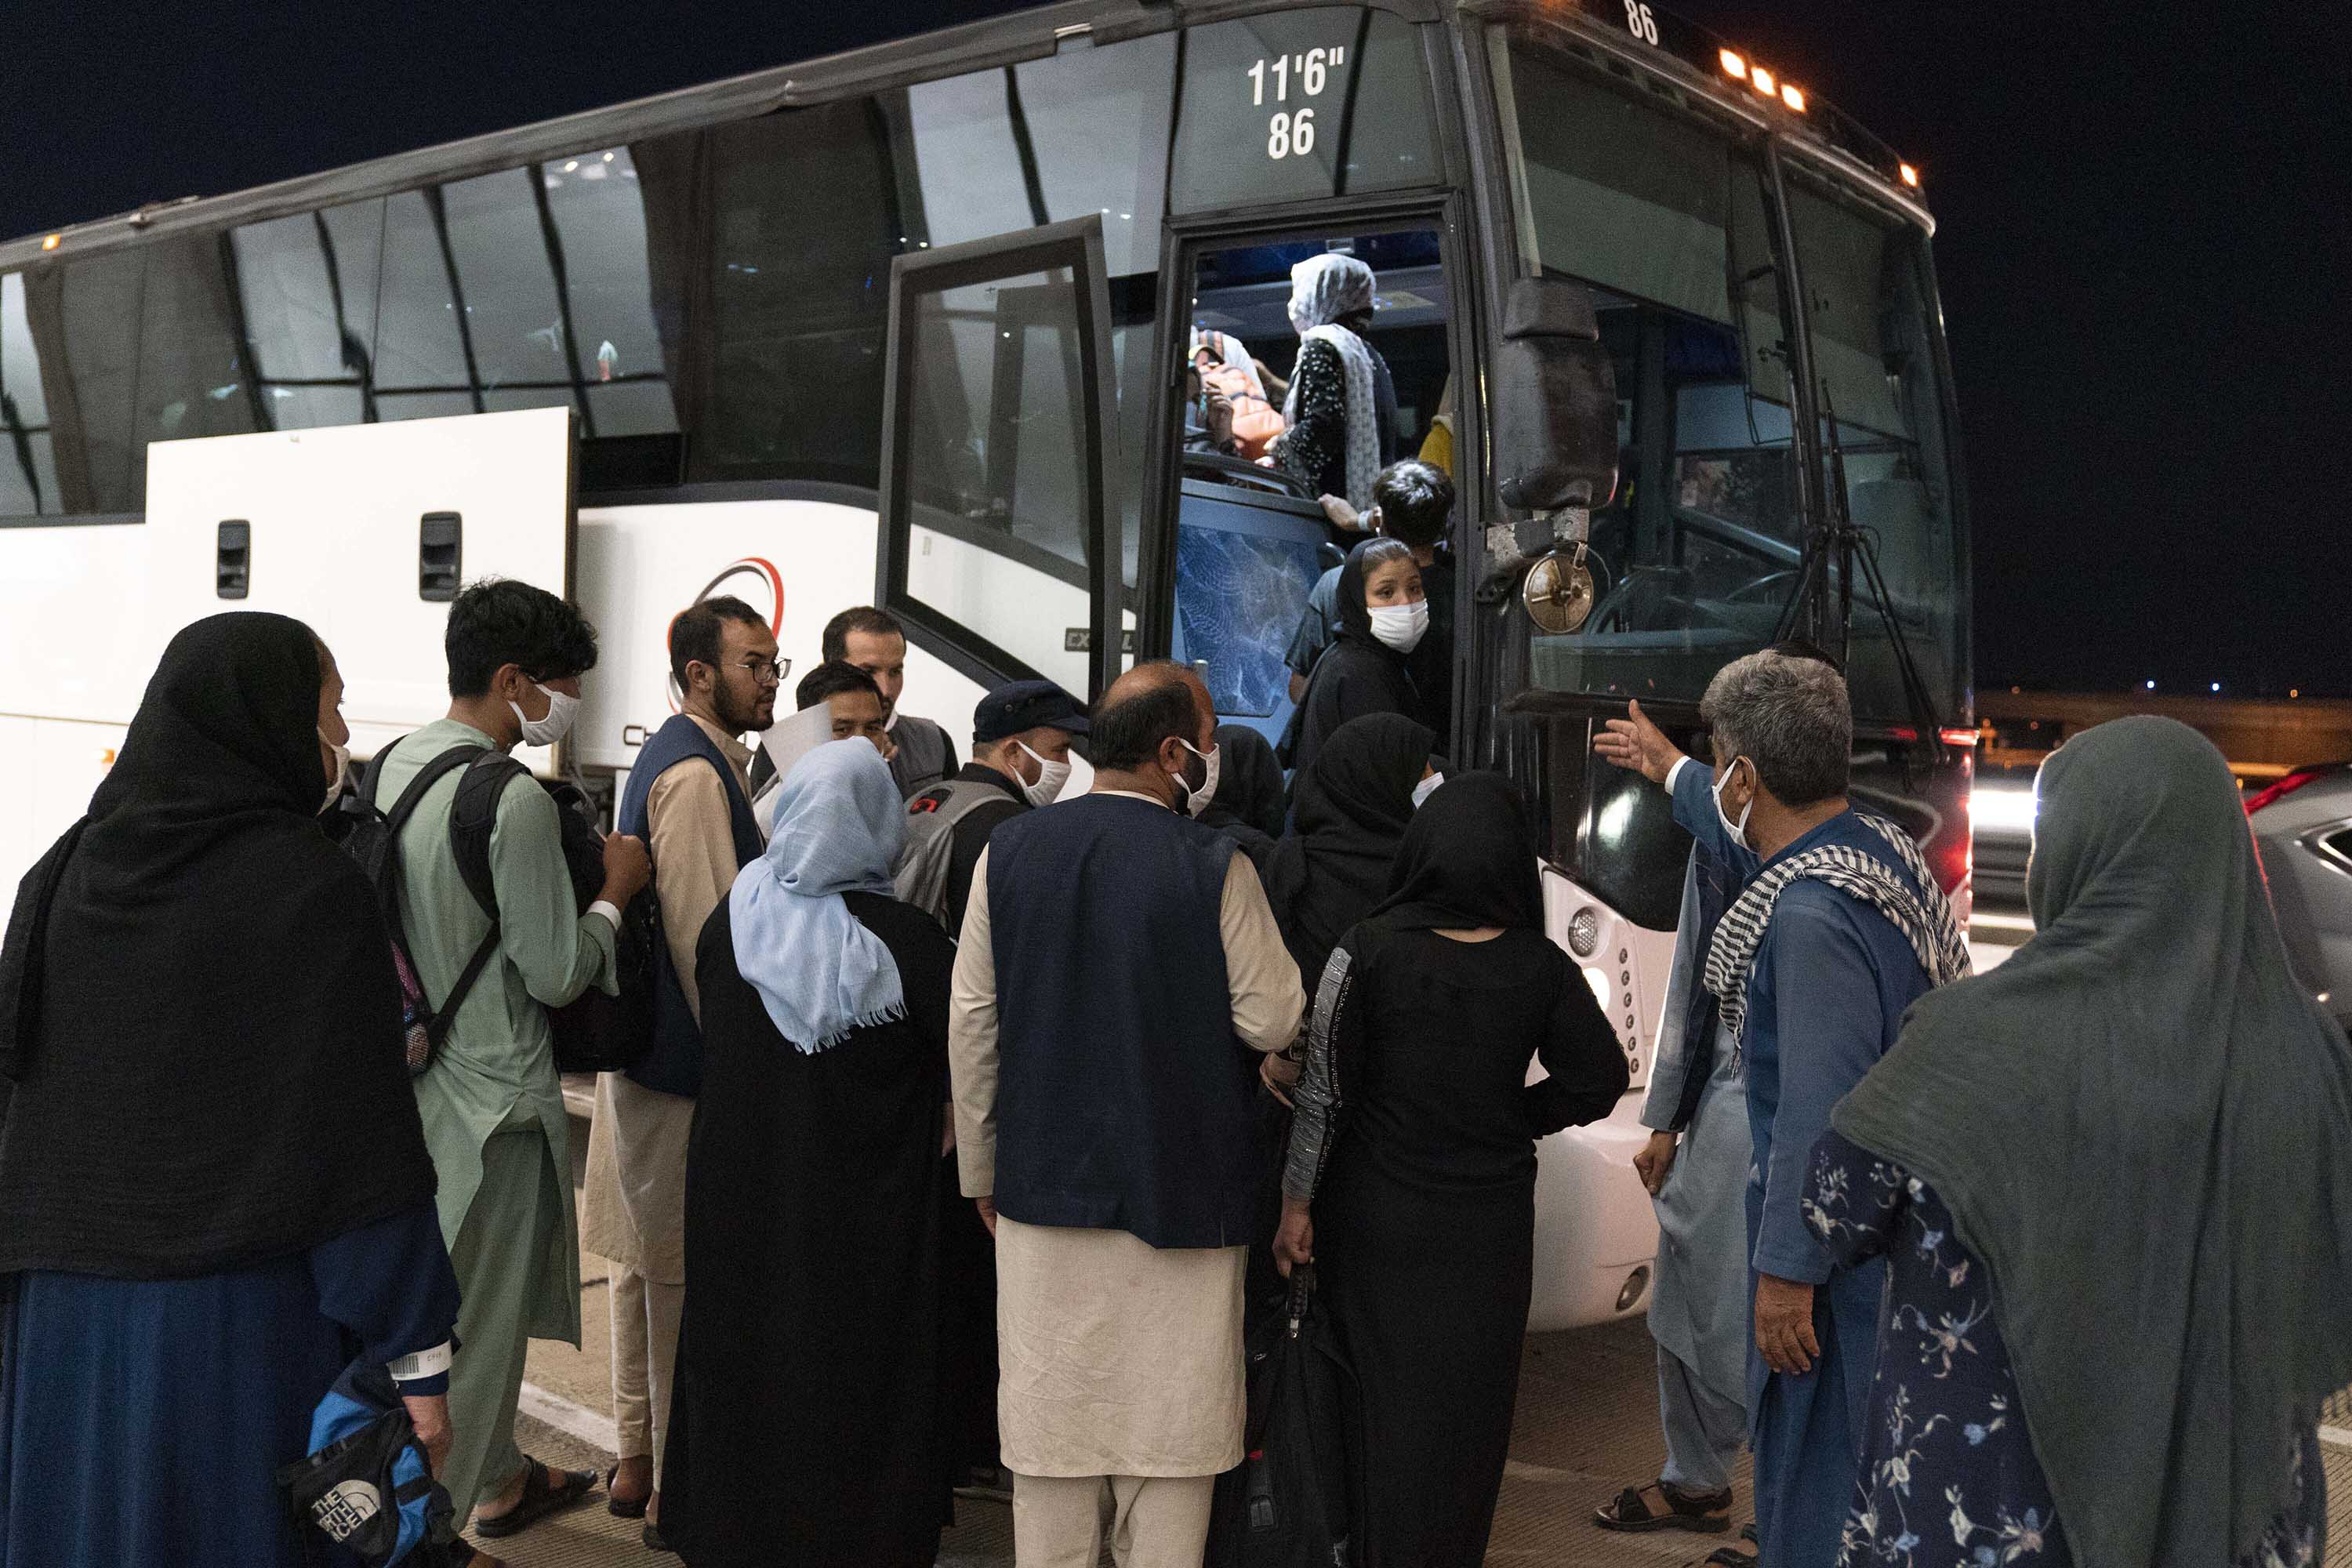 Evacuees from Kabul, Afghanistan board a bus after arriving at Washington Dulles International Airport in Chantilly, Virginia, on Saturday, August 21.